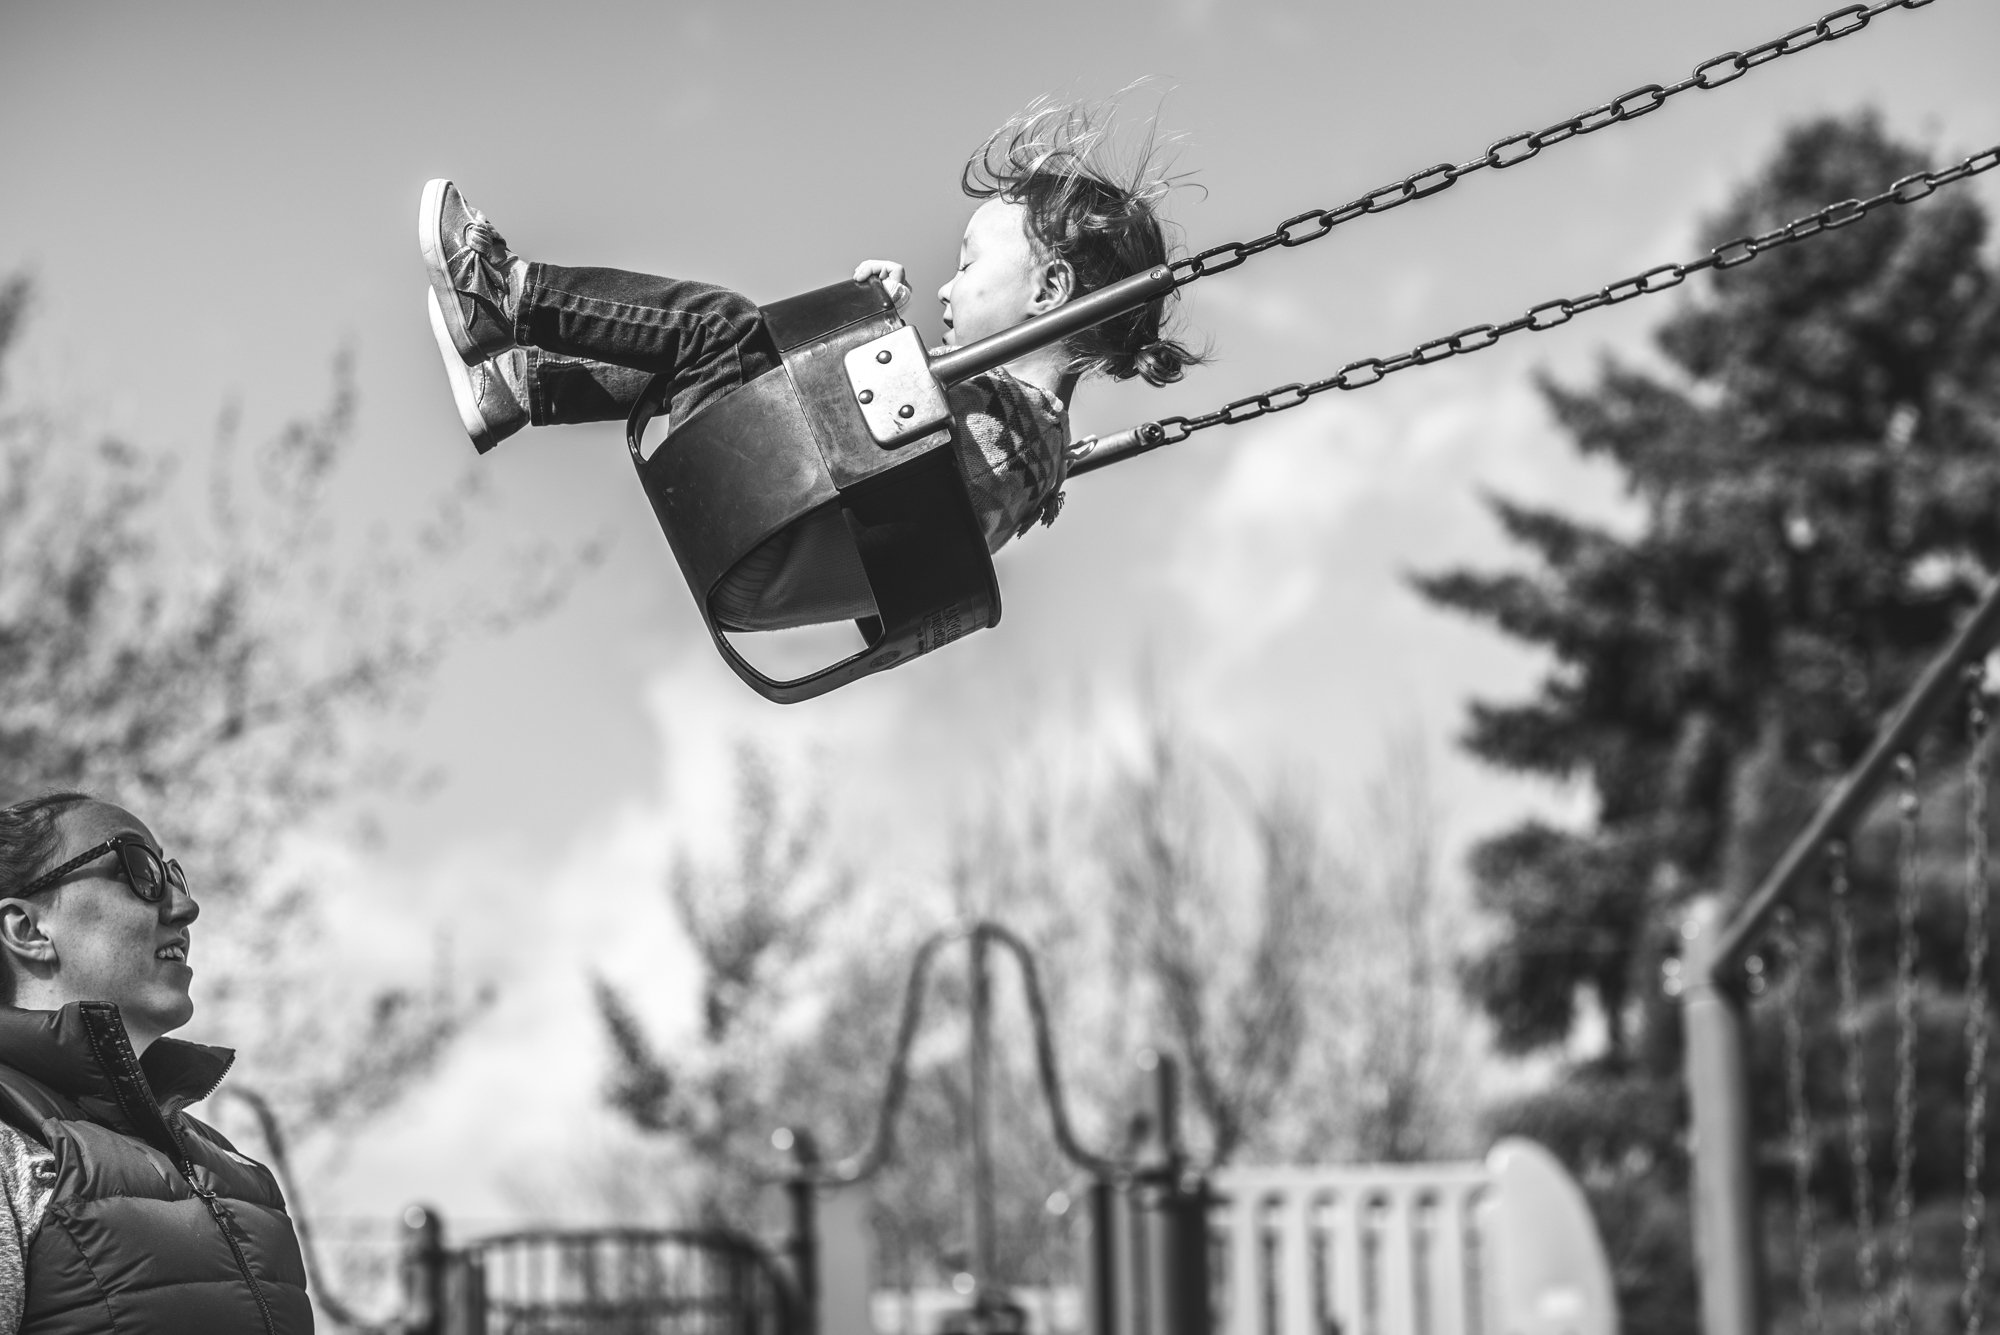 Black and white photo of a little girl swinging high on a swing as her mother watches from below